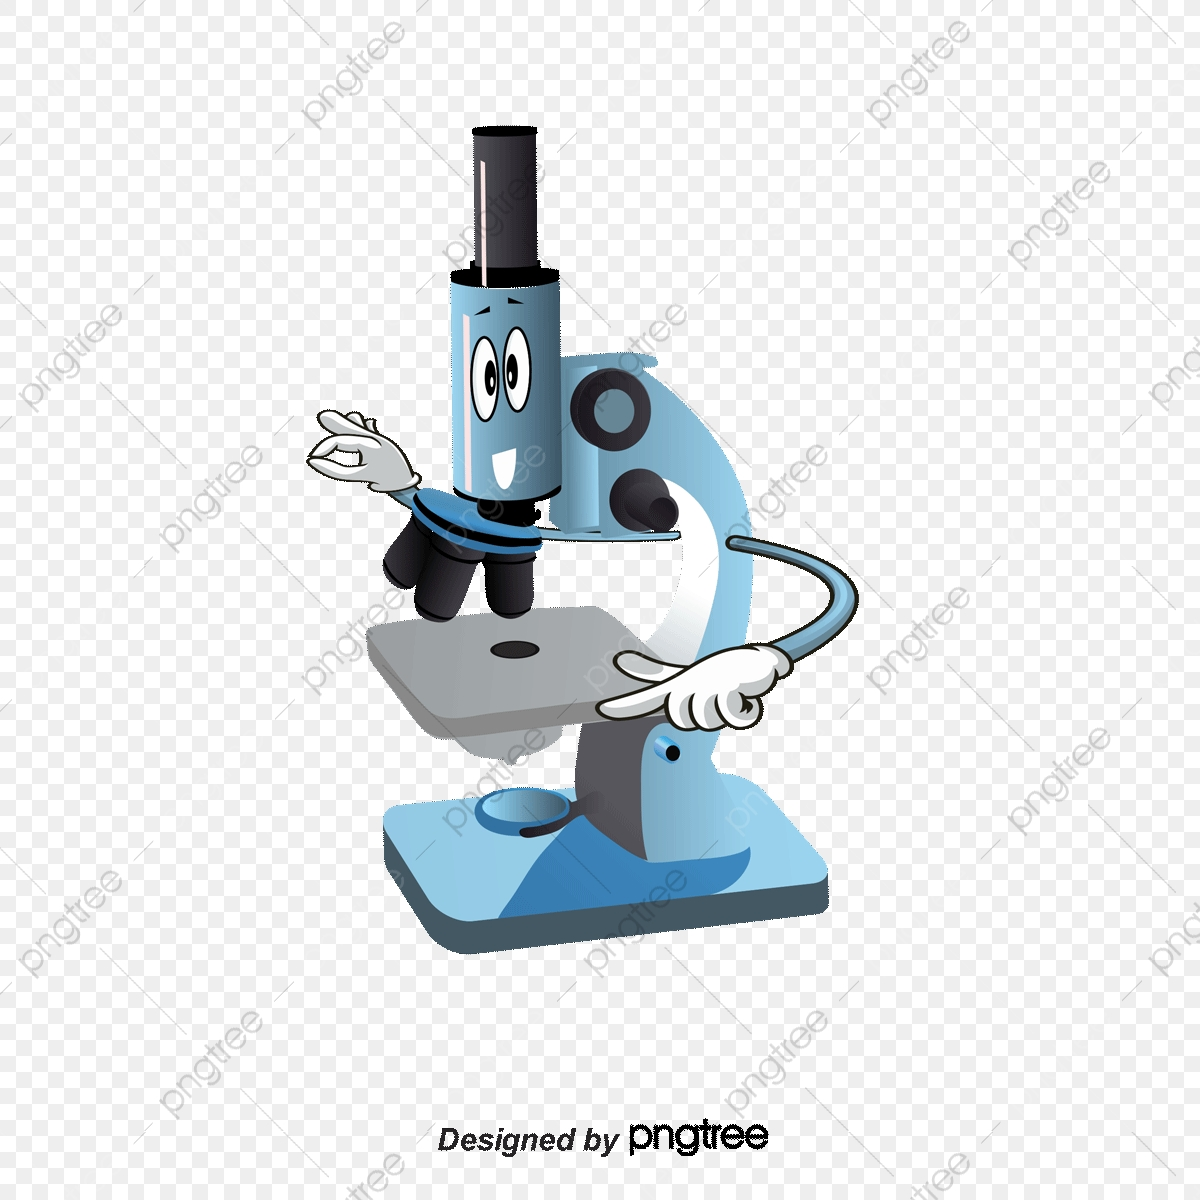 vector cartoon microscope cartoon vector lovely microscope cartoon microscope png transparent clipart image and psd file for free download https pngtree com freepng vector cartoon microscope 1492498 html